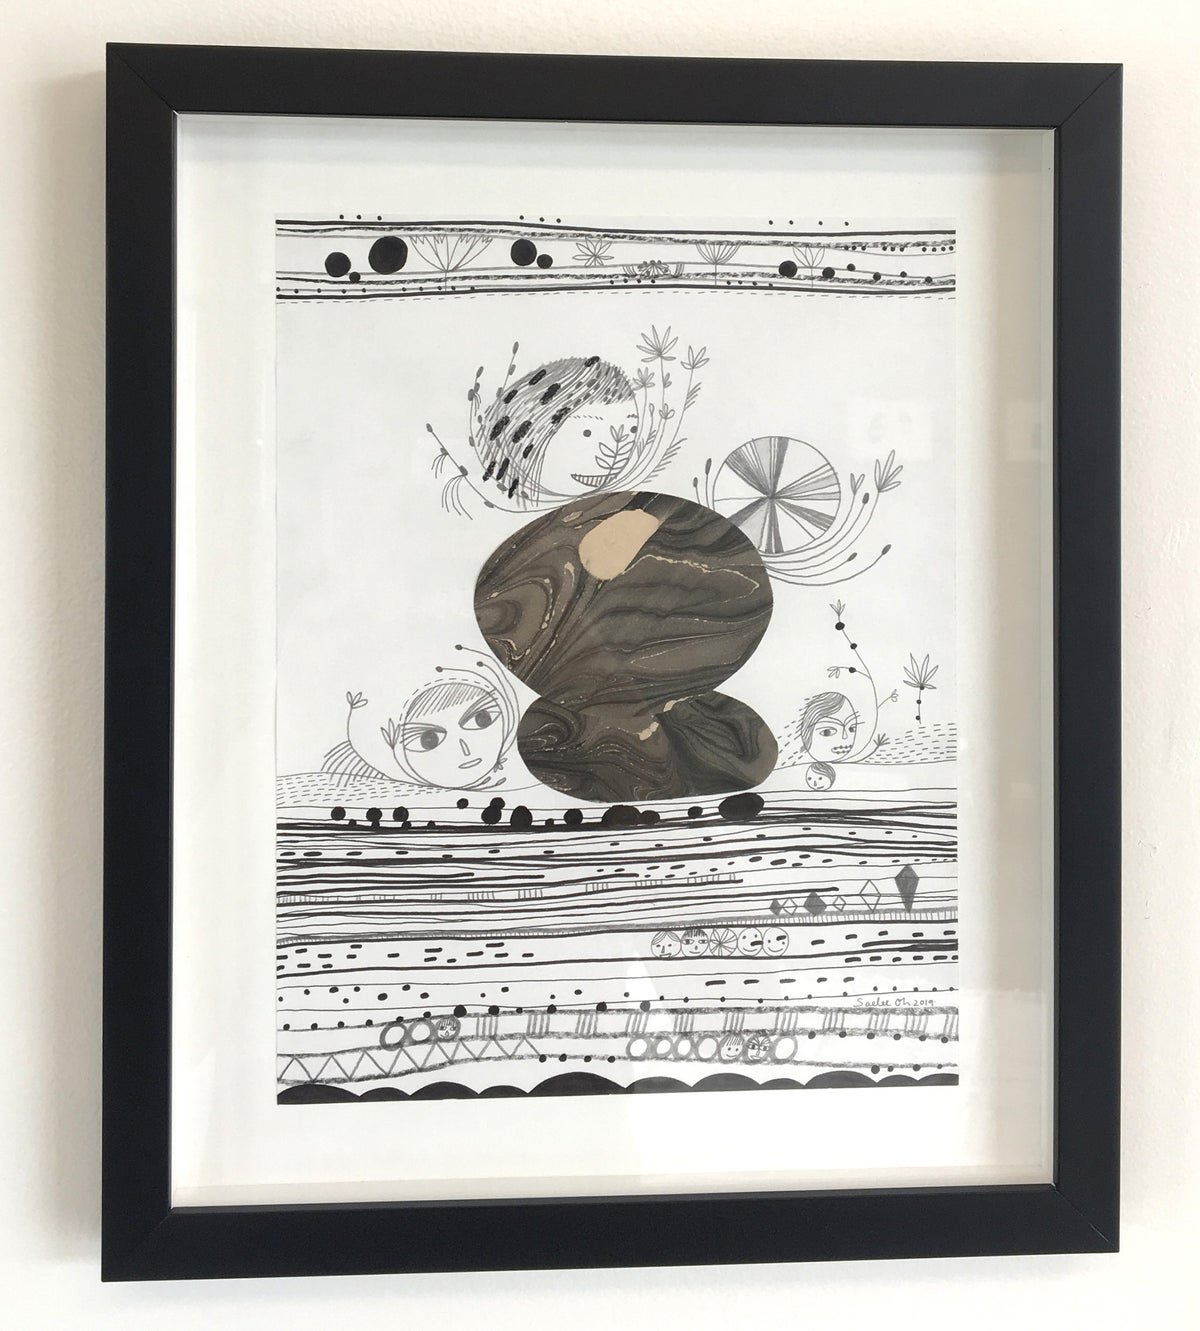 Image of Building Stones - framed drawing